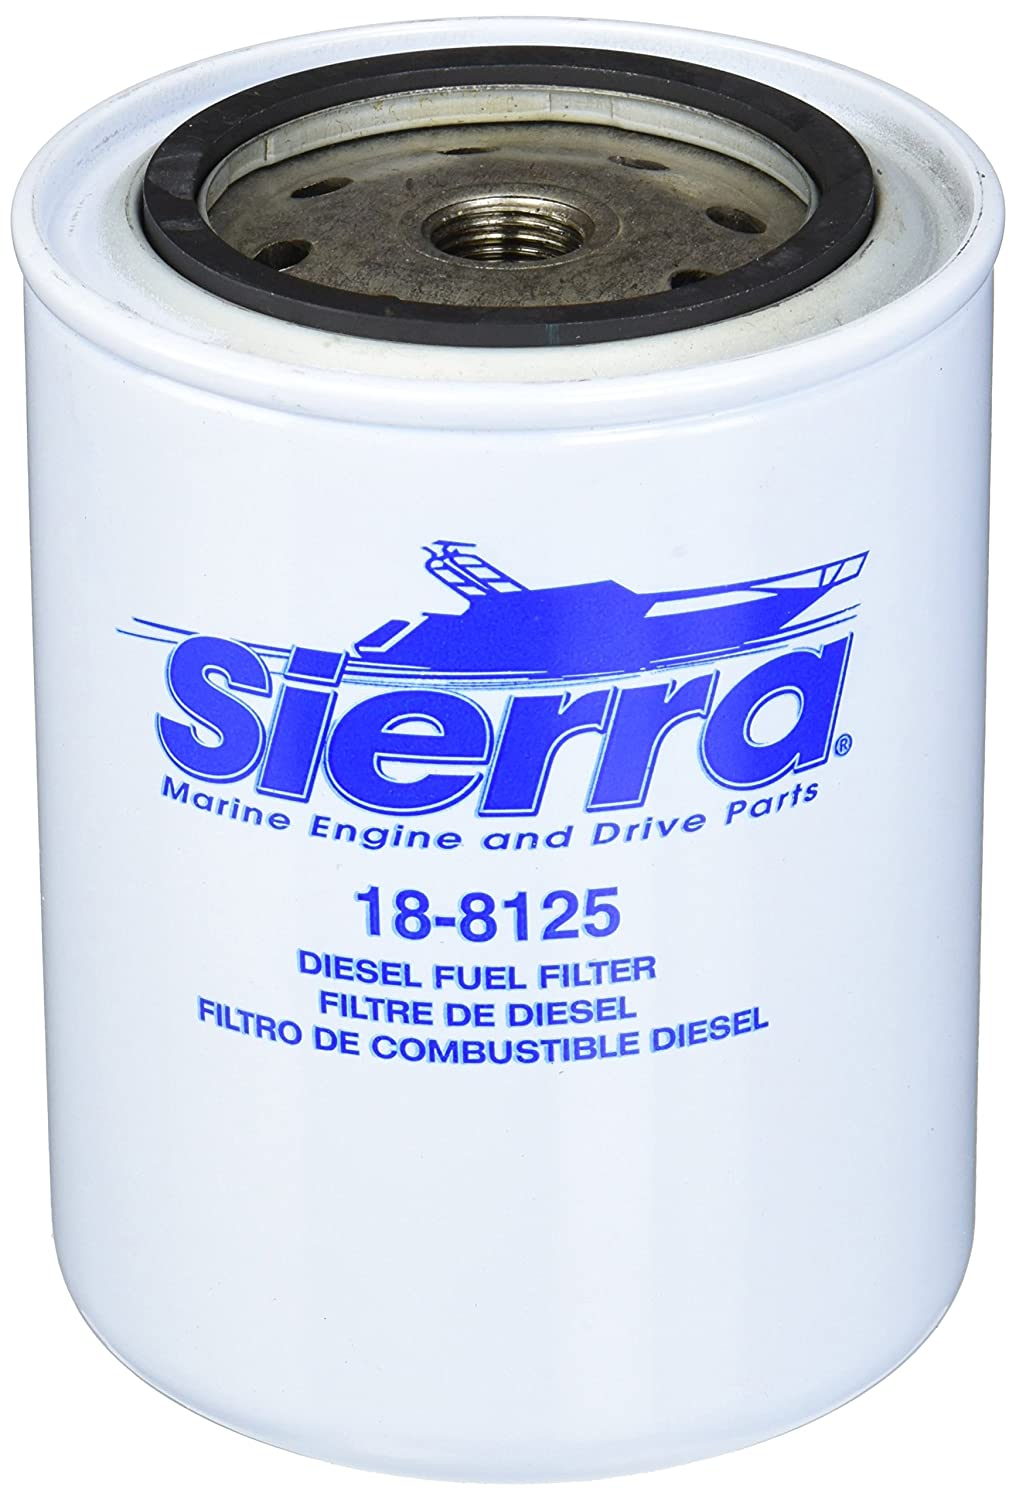 Sierra 18 8125 Diesel Fuel Filter For Volvo Penta Marine 1990 Jeep Wrangler Engines 3583443 Automotive